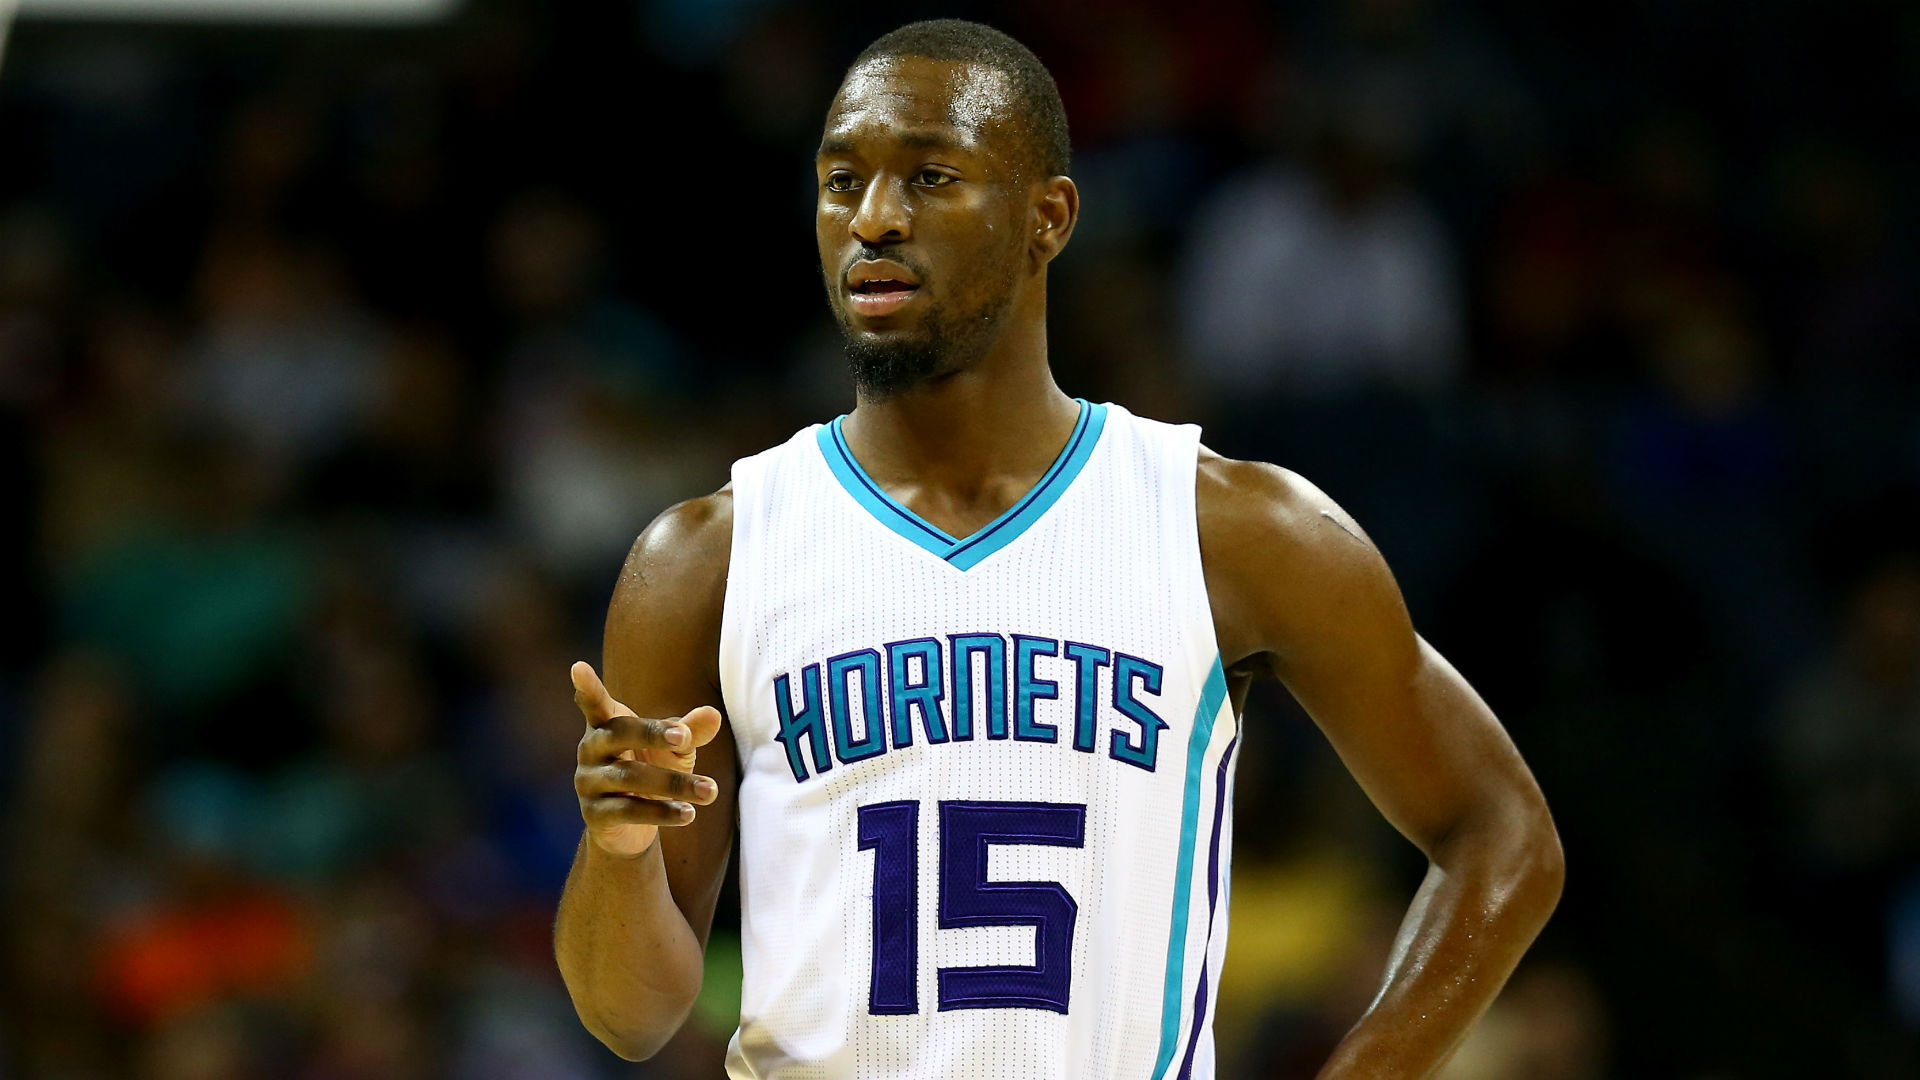 NBA money-line picks - Hornets aiming to extend streak to two